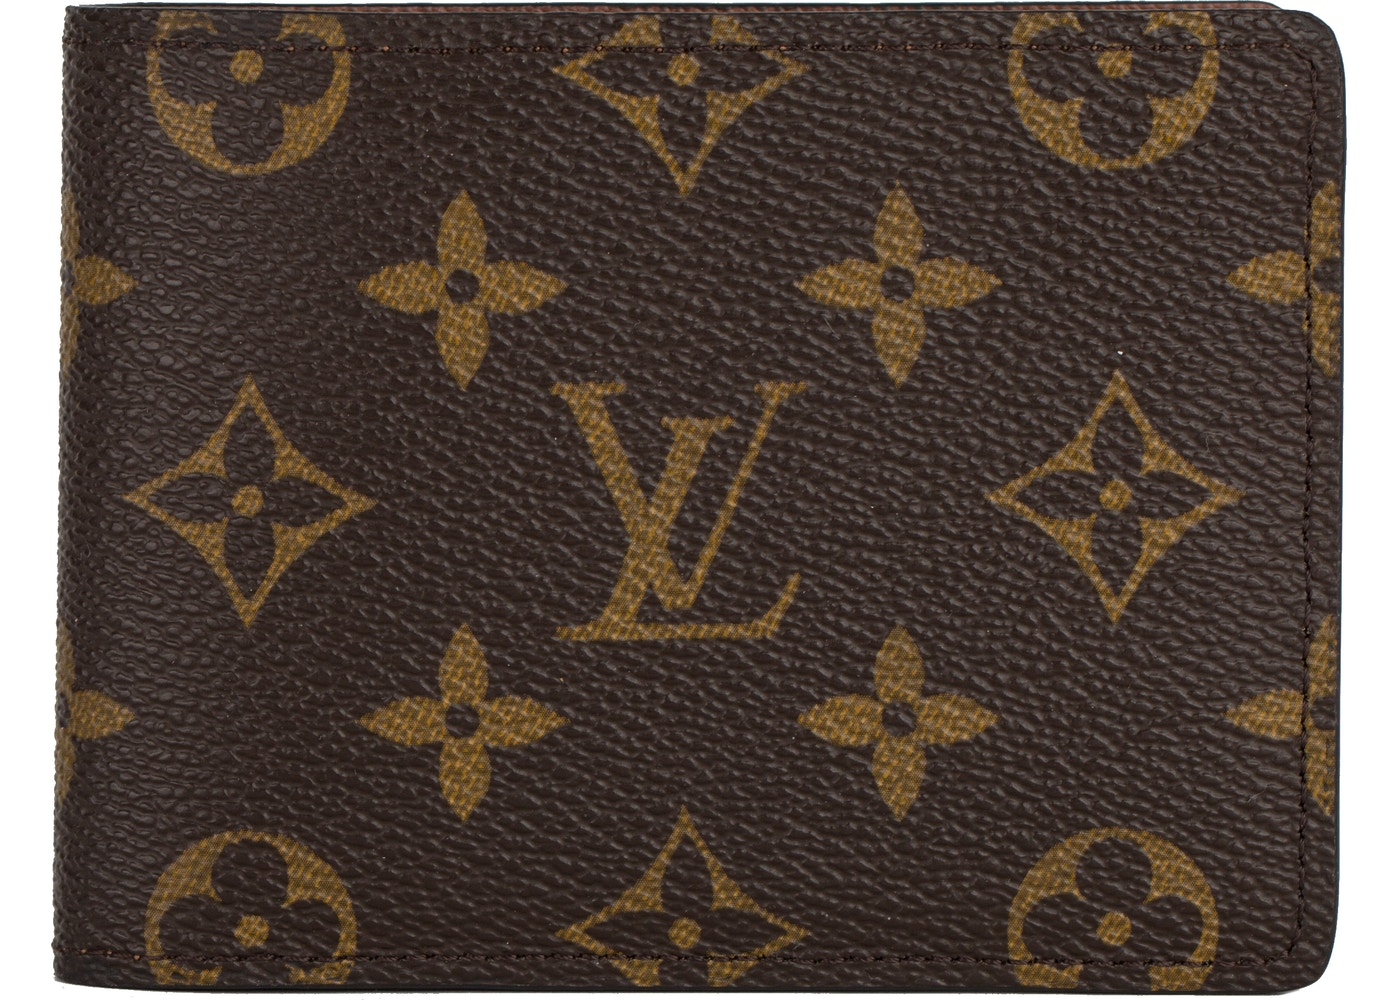 0b74acde454 Louis Vuitton Multiple Wallet Monogram Brown